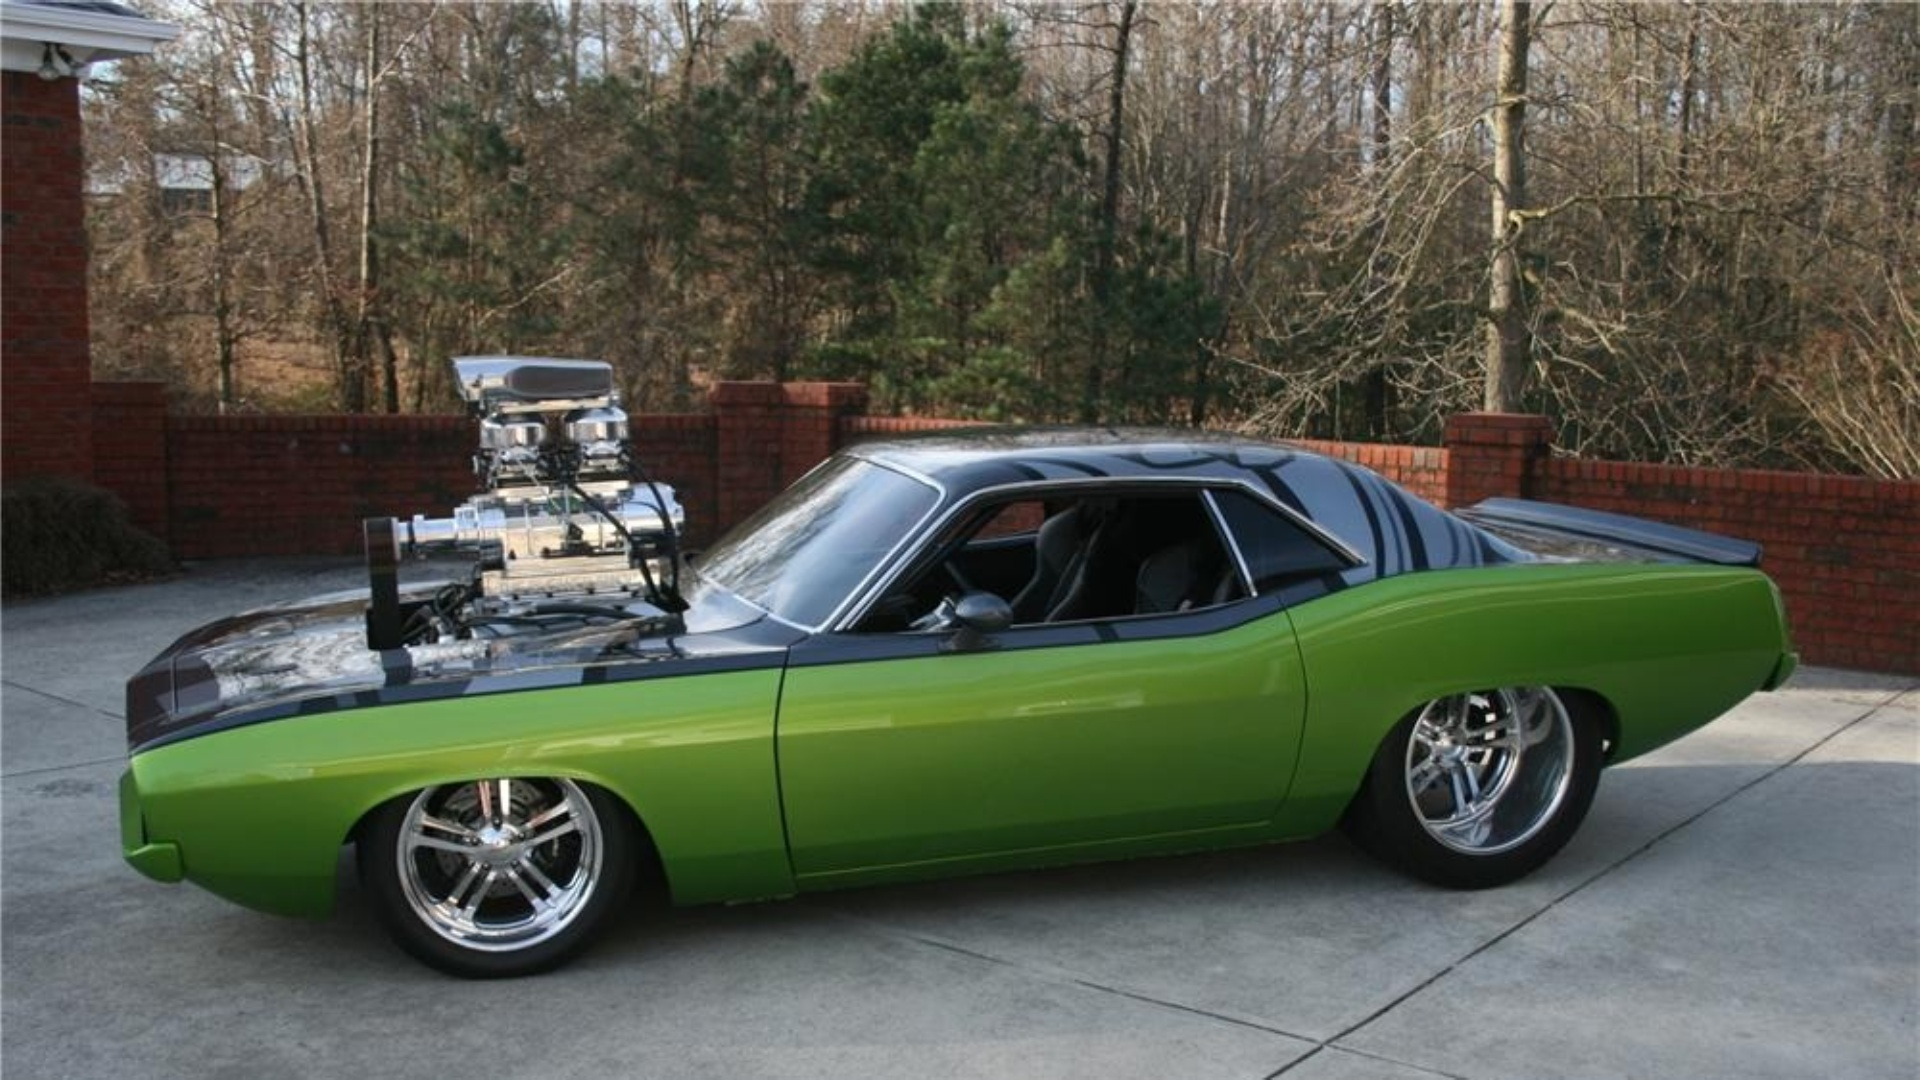 Plymouth Barracuda Full Hd Wallpaper And Hintergrund